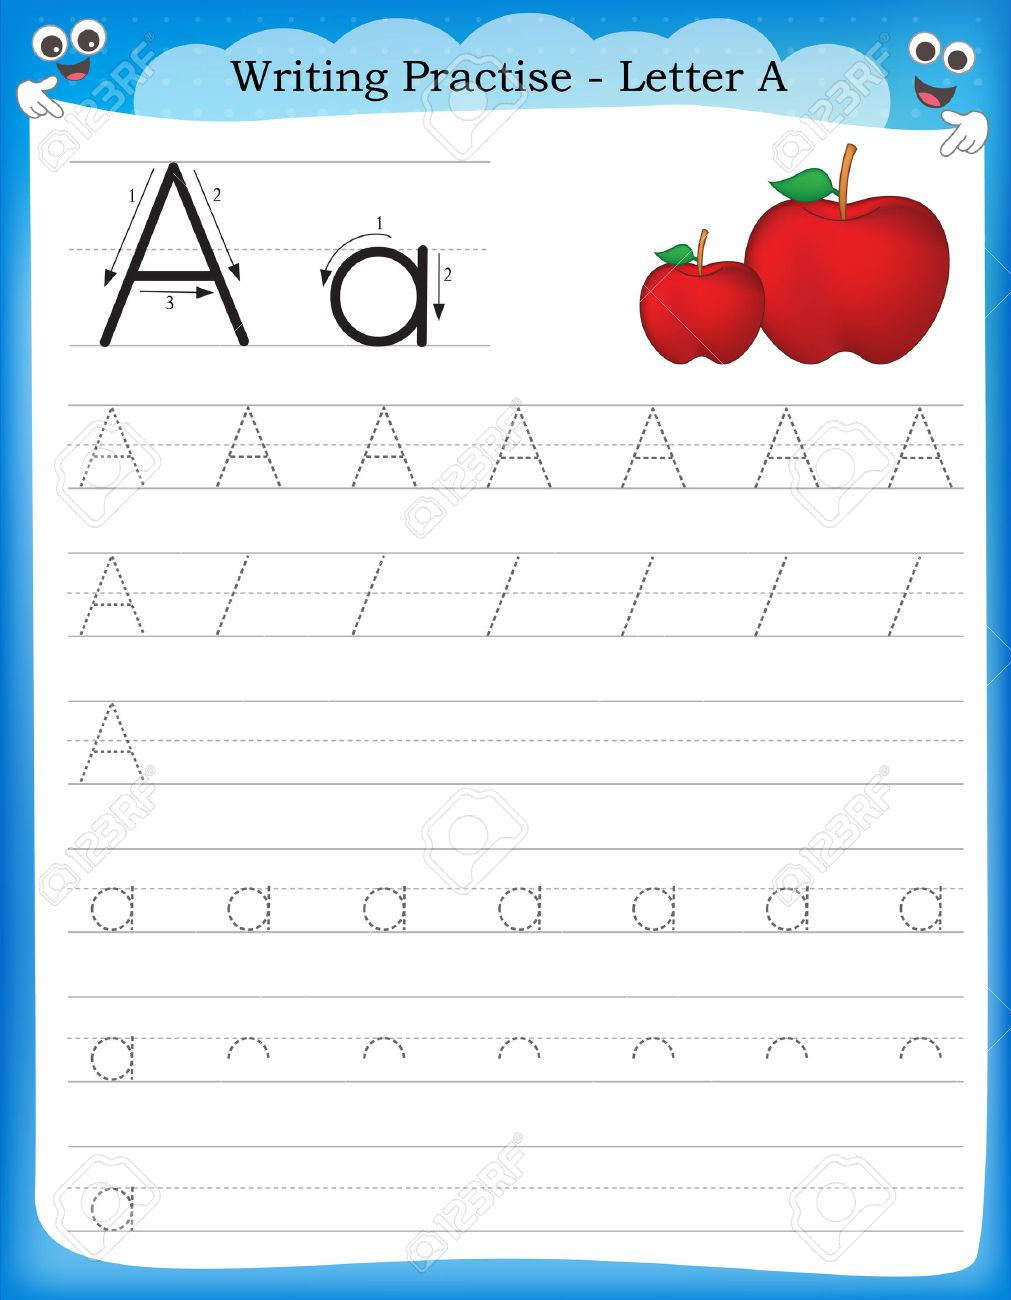 Writing Practice Letter A Printable Worksheet For Preschool ...